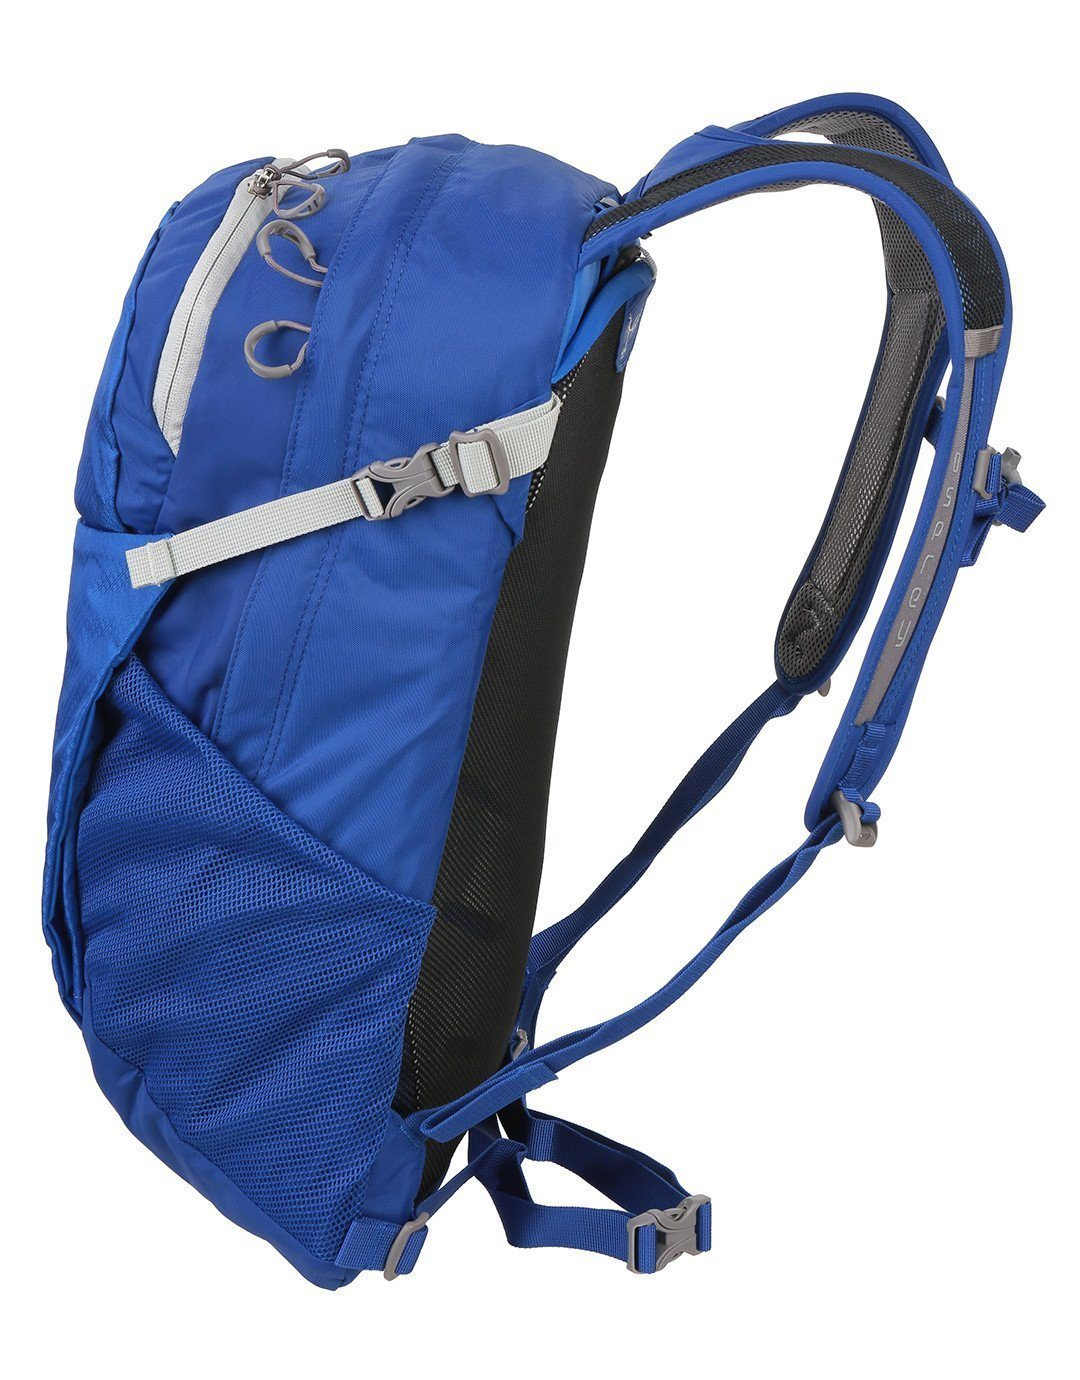 factory authentic new arrivals competitive price Osprey Daylite Plus • EPIC REVIEW for February 2020